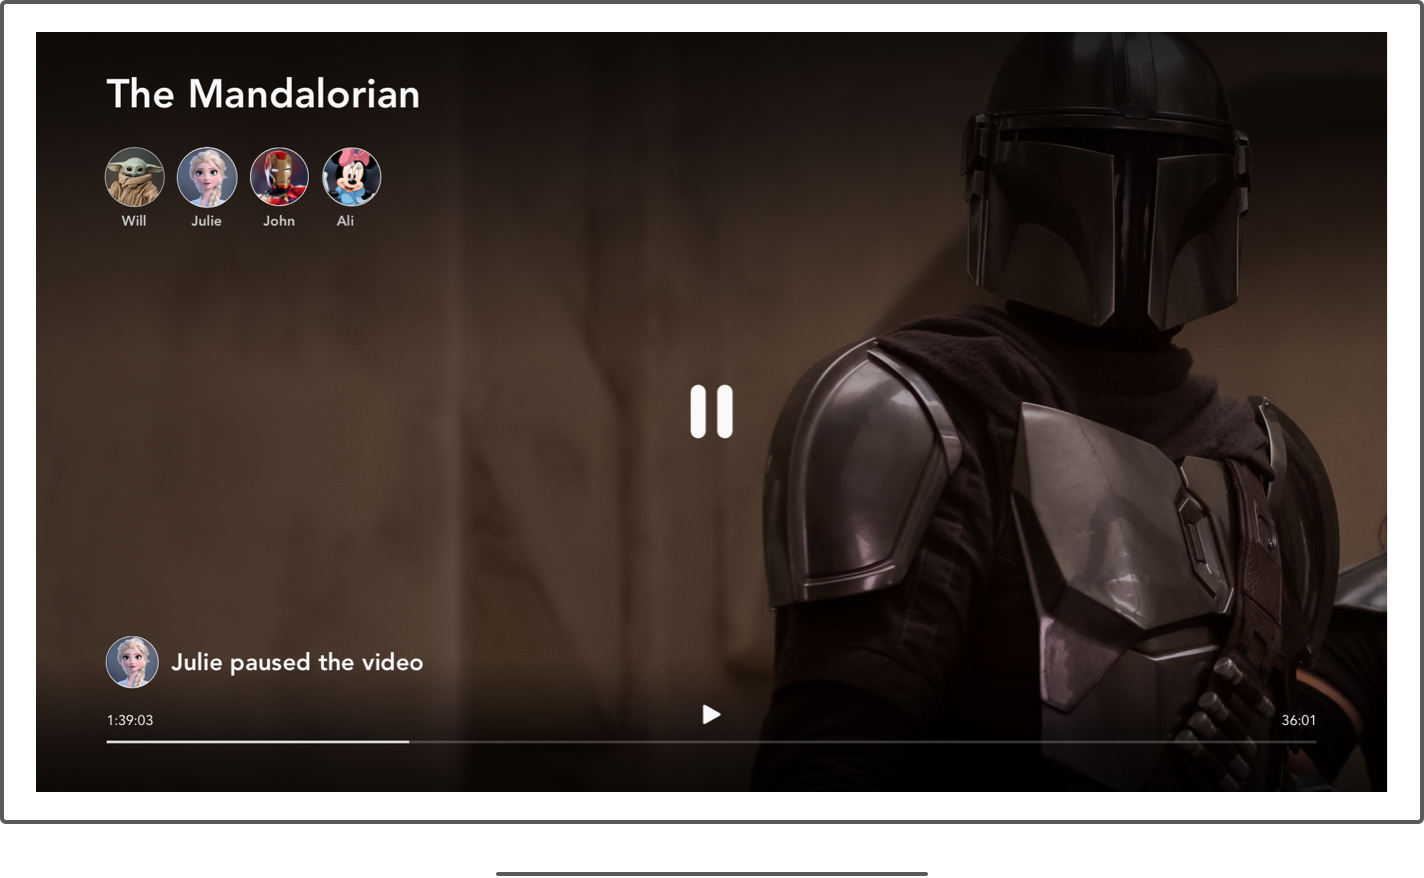 Disney Adds 'GroupWatch' Feature To Disney+ In Major Social Viewing Push